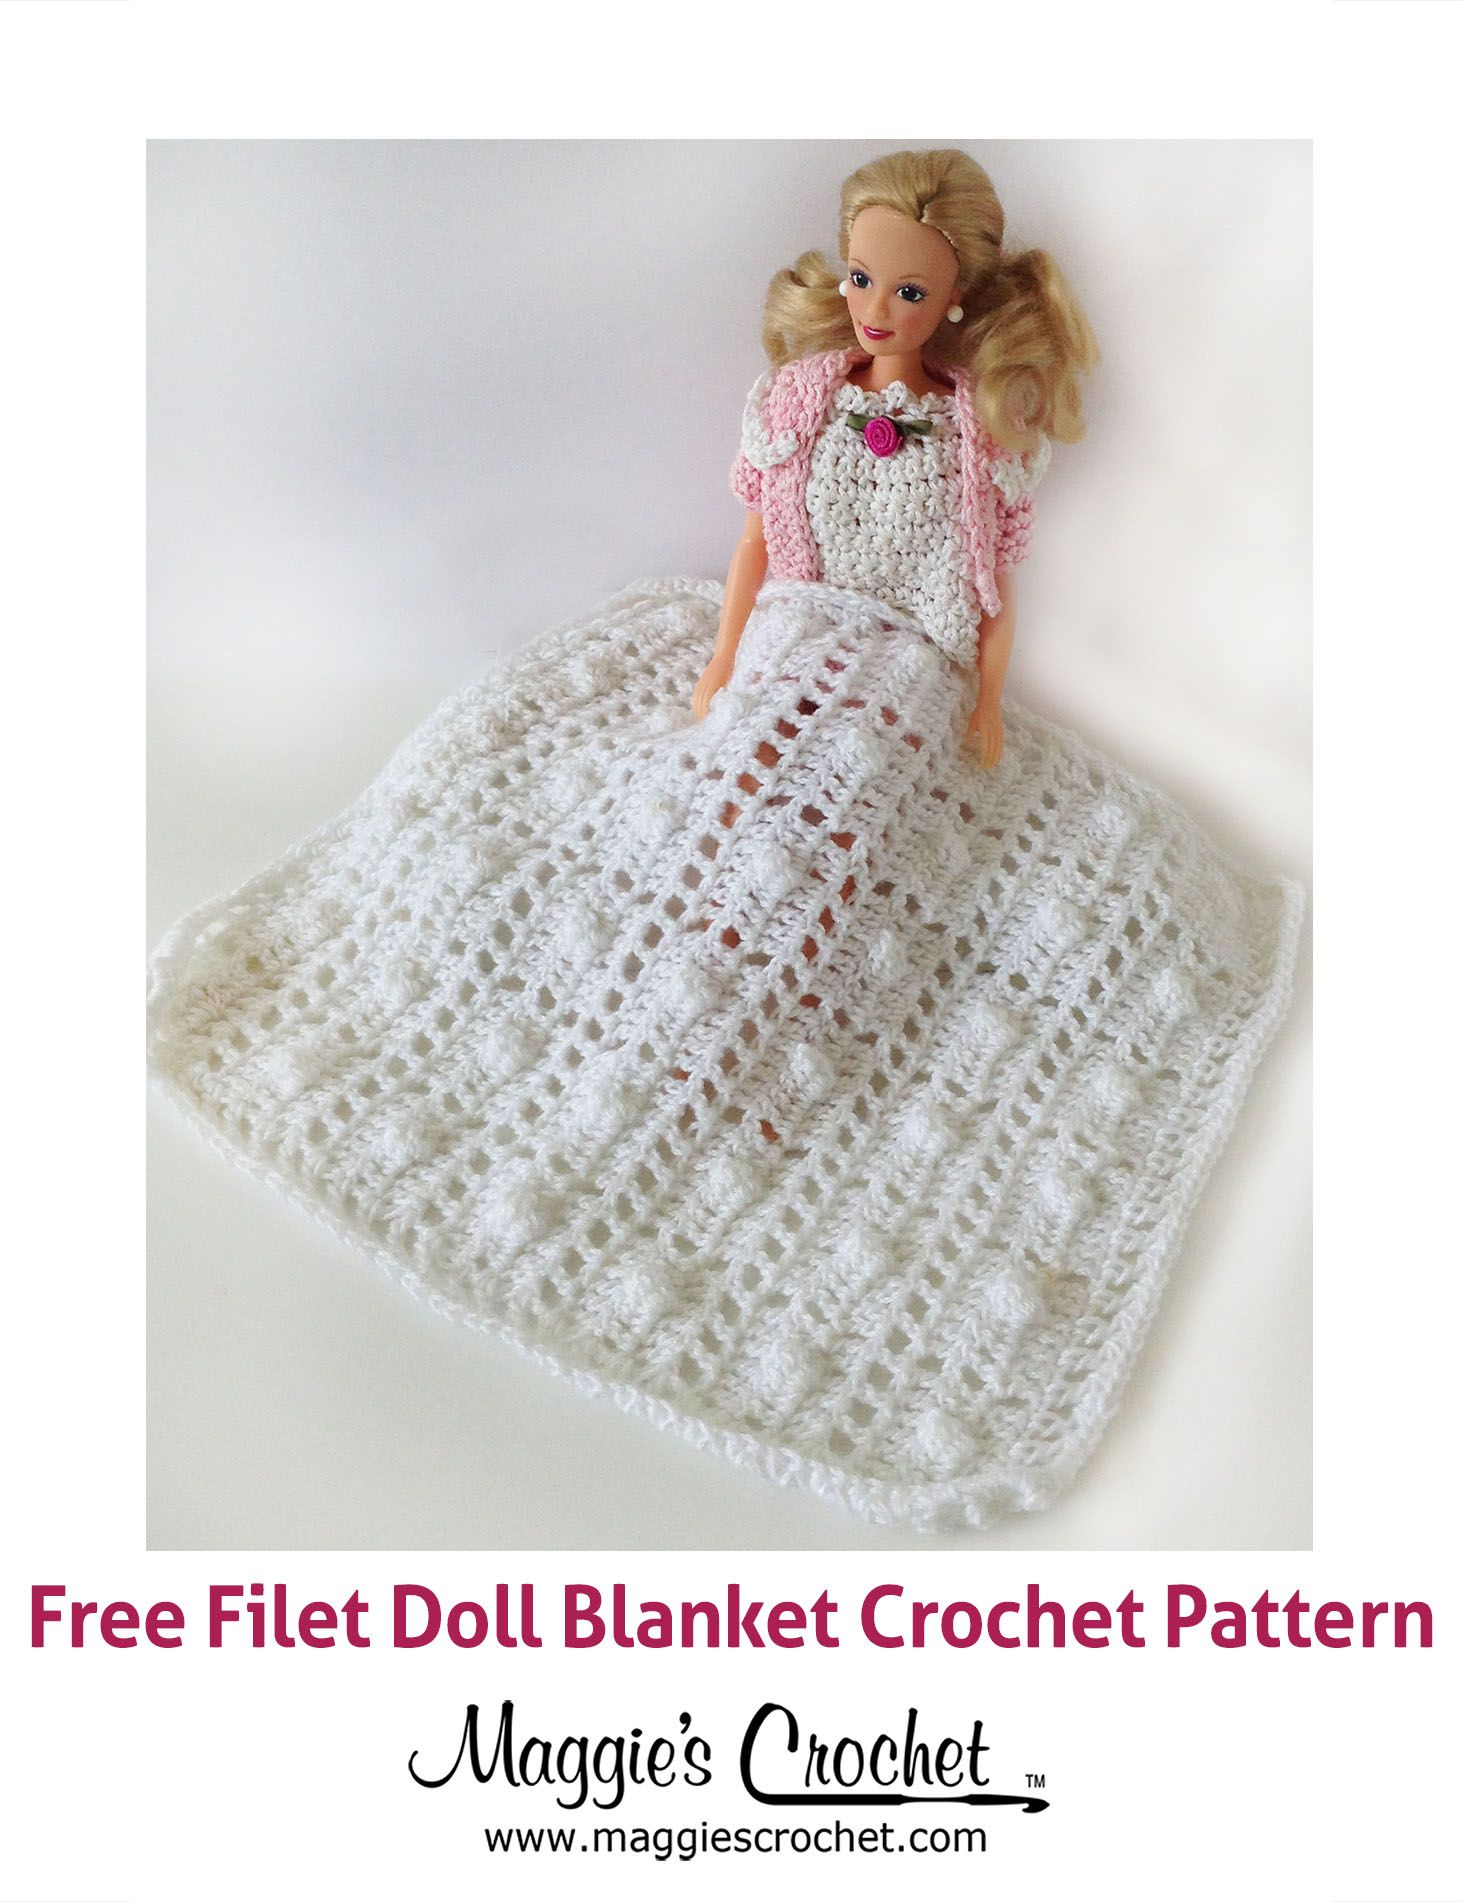 Baby doll filet afghan free crochet pattern from maggies crochet baby doll filet afghan free crochet pattern from maggies crochet bankloansurffo Image collections